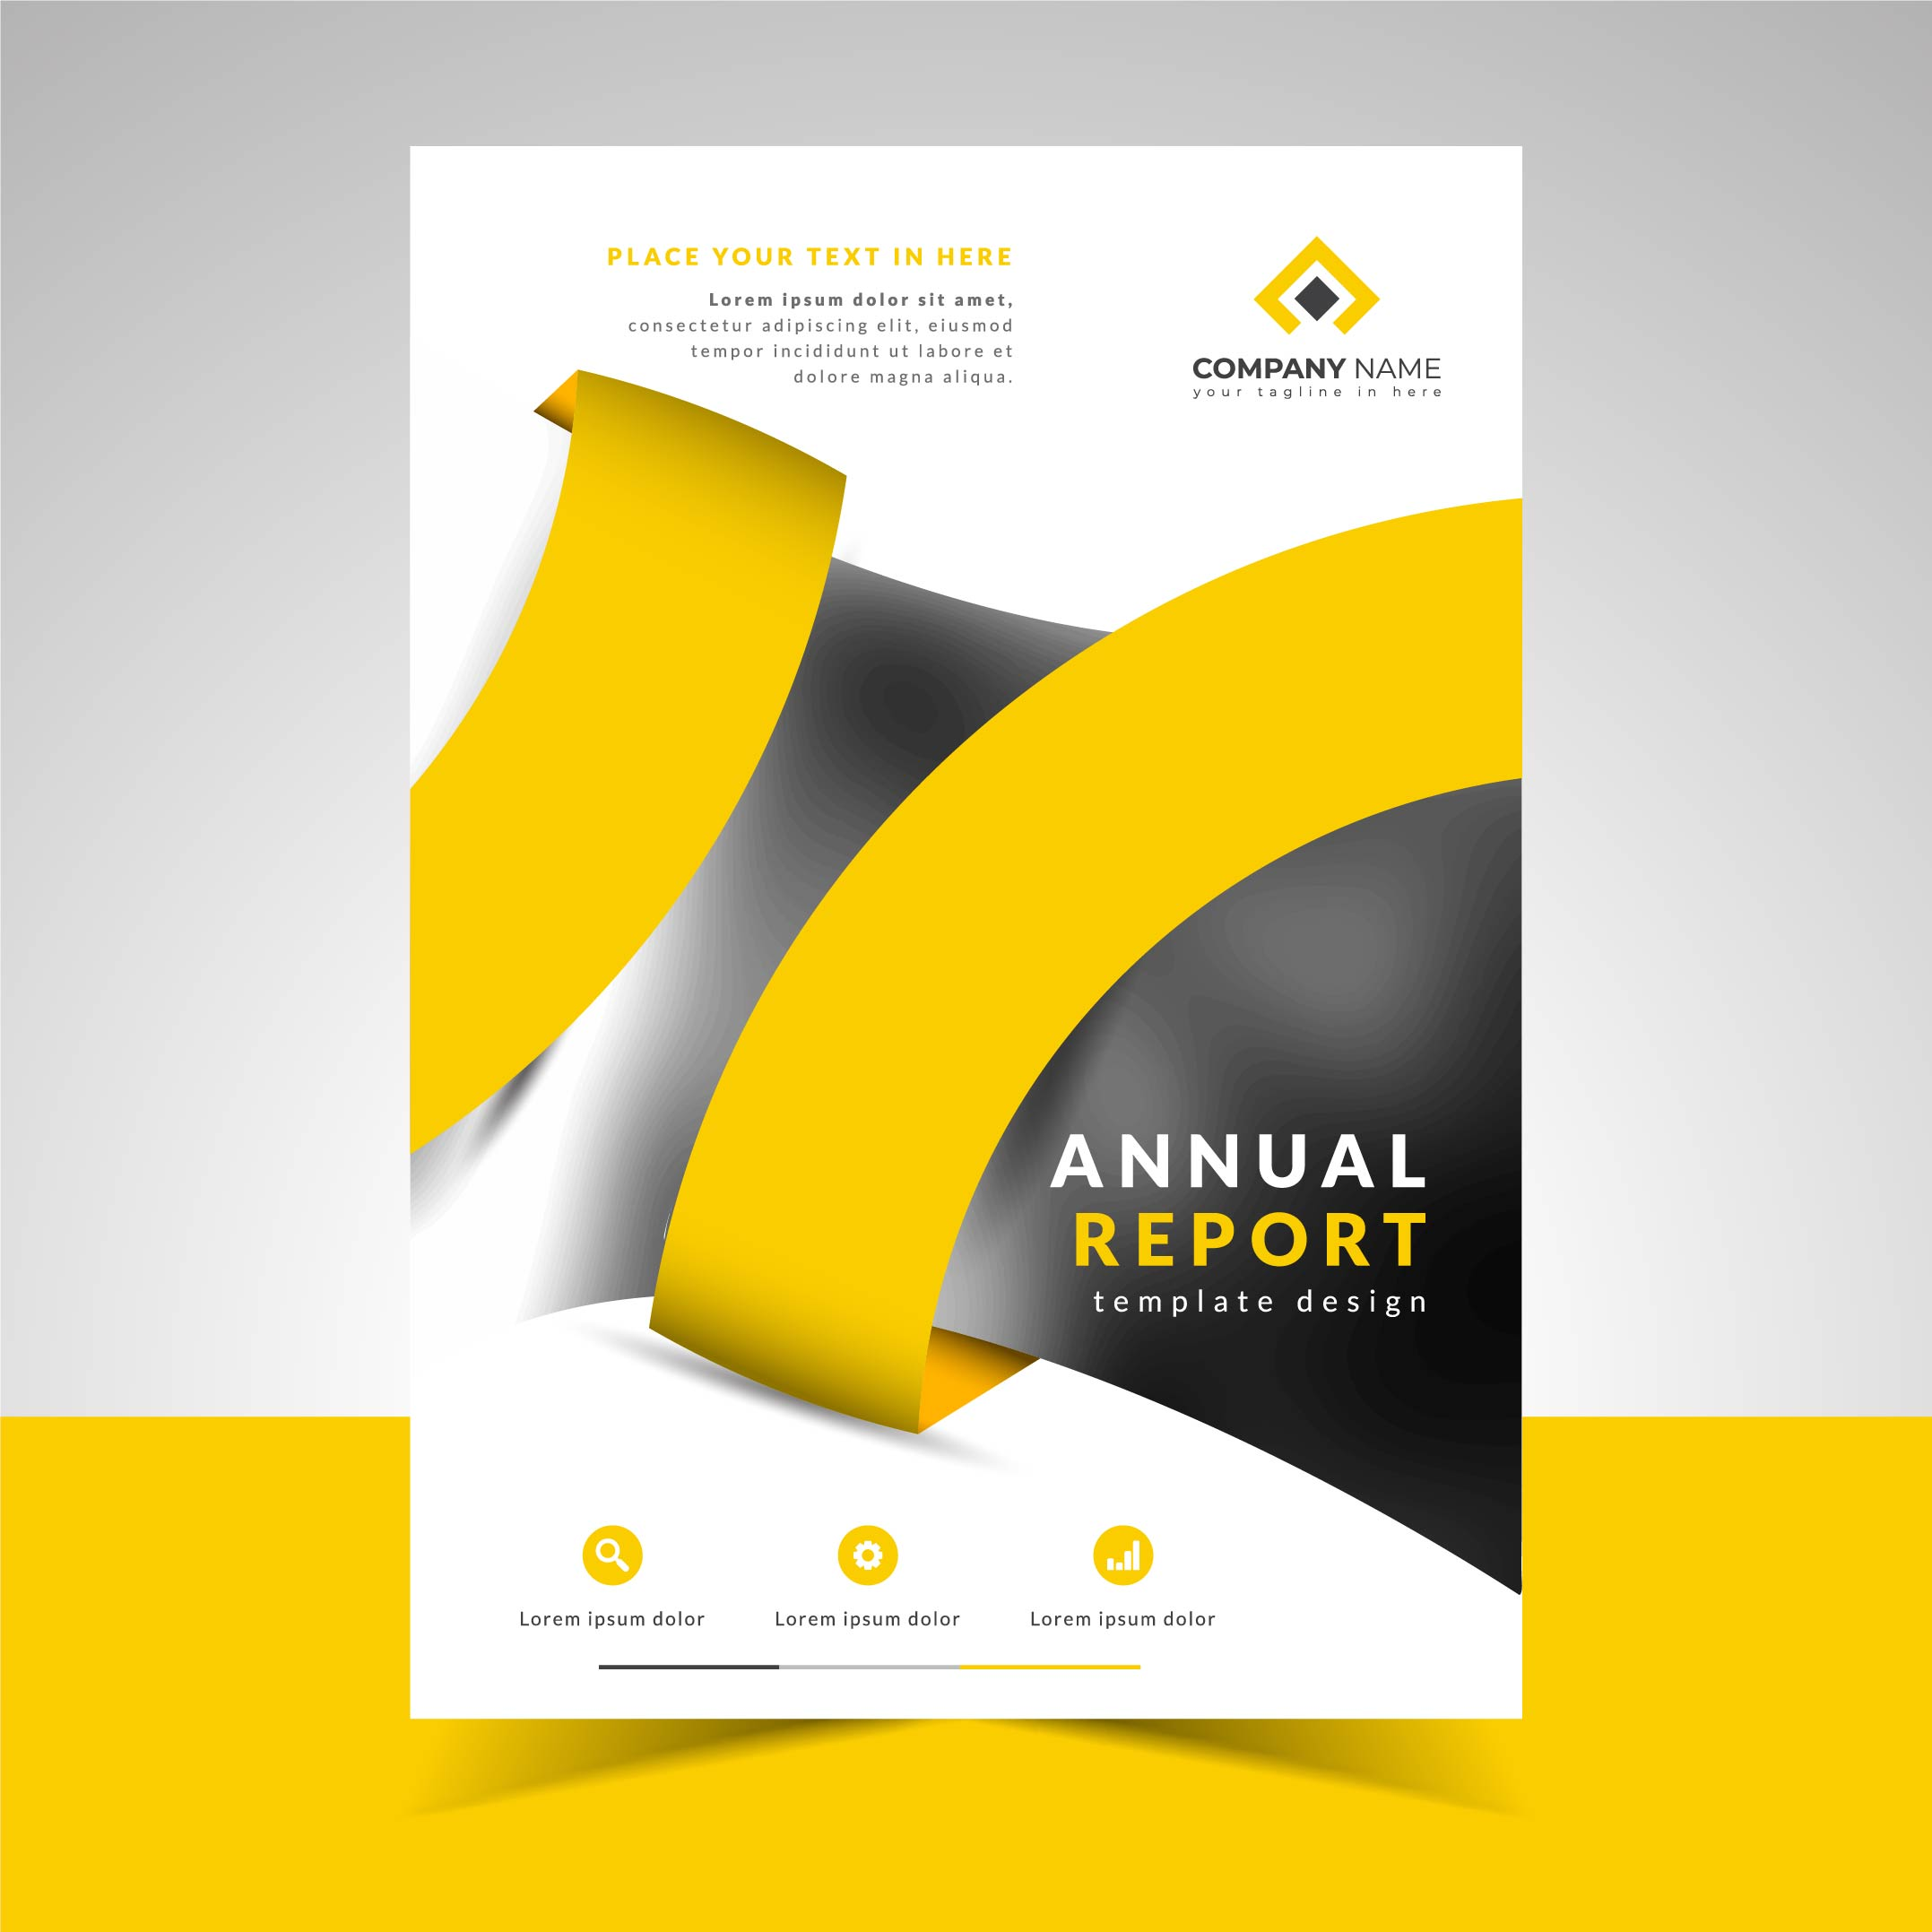 Creative Business Annual Report Template Download Free Vectors Clipart Graphics Vector Art